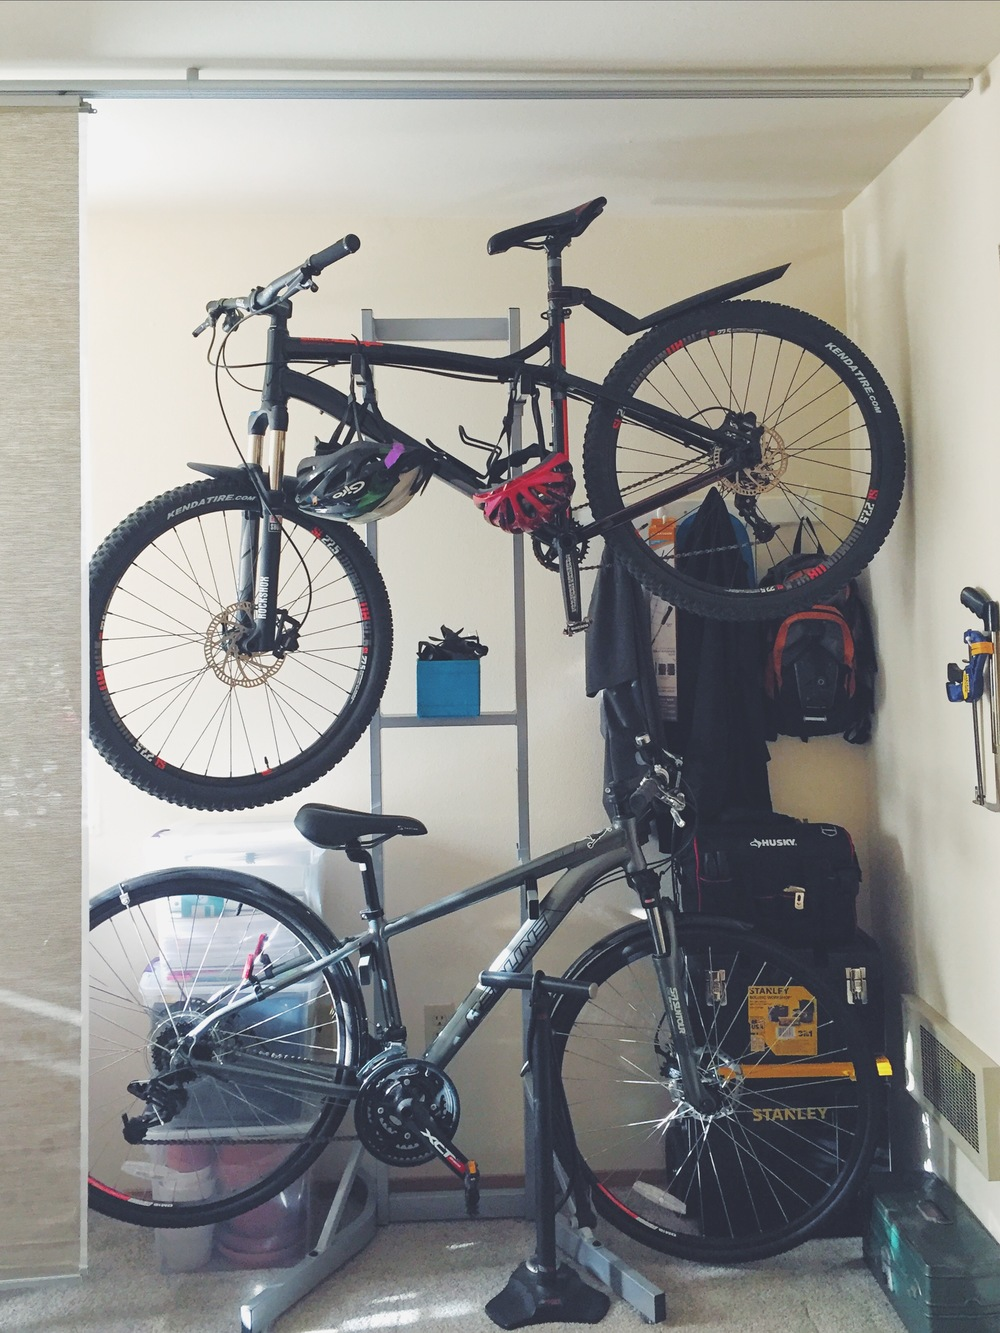 Bike shed ... open. These screens are light and easy to pull. A great solution for hiding stuff you need to access often but don't want to look at all the time ...